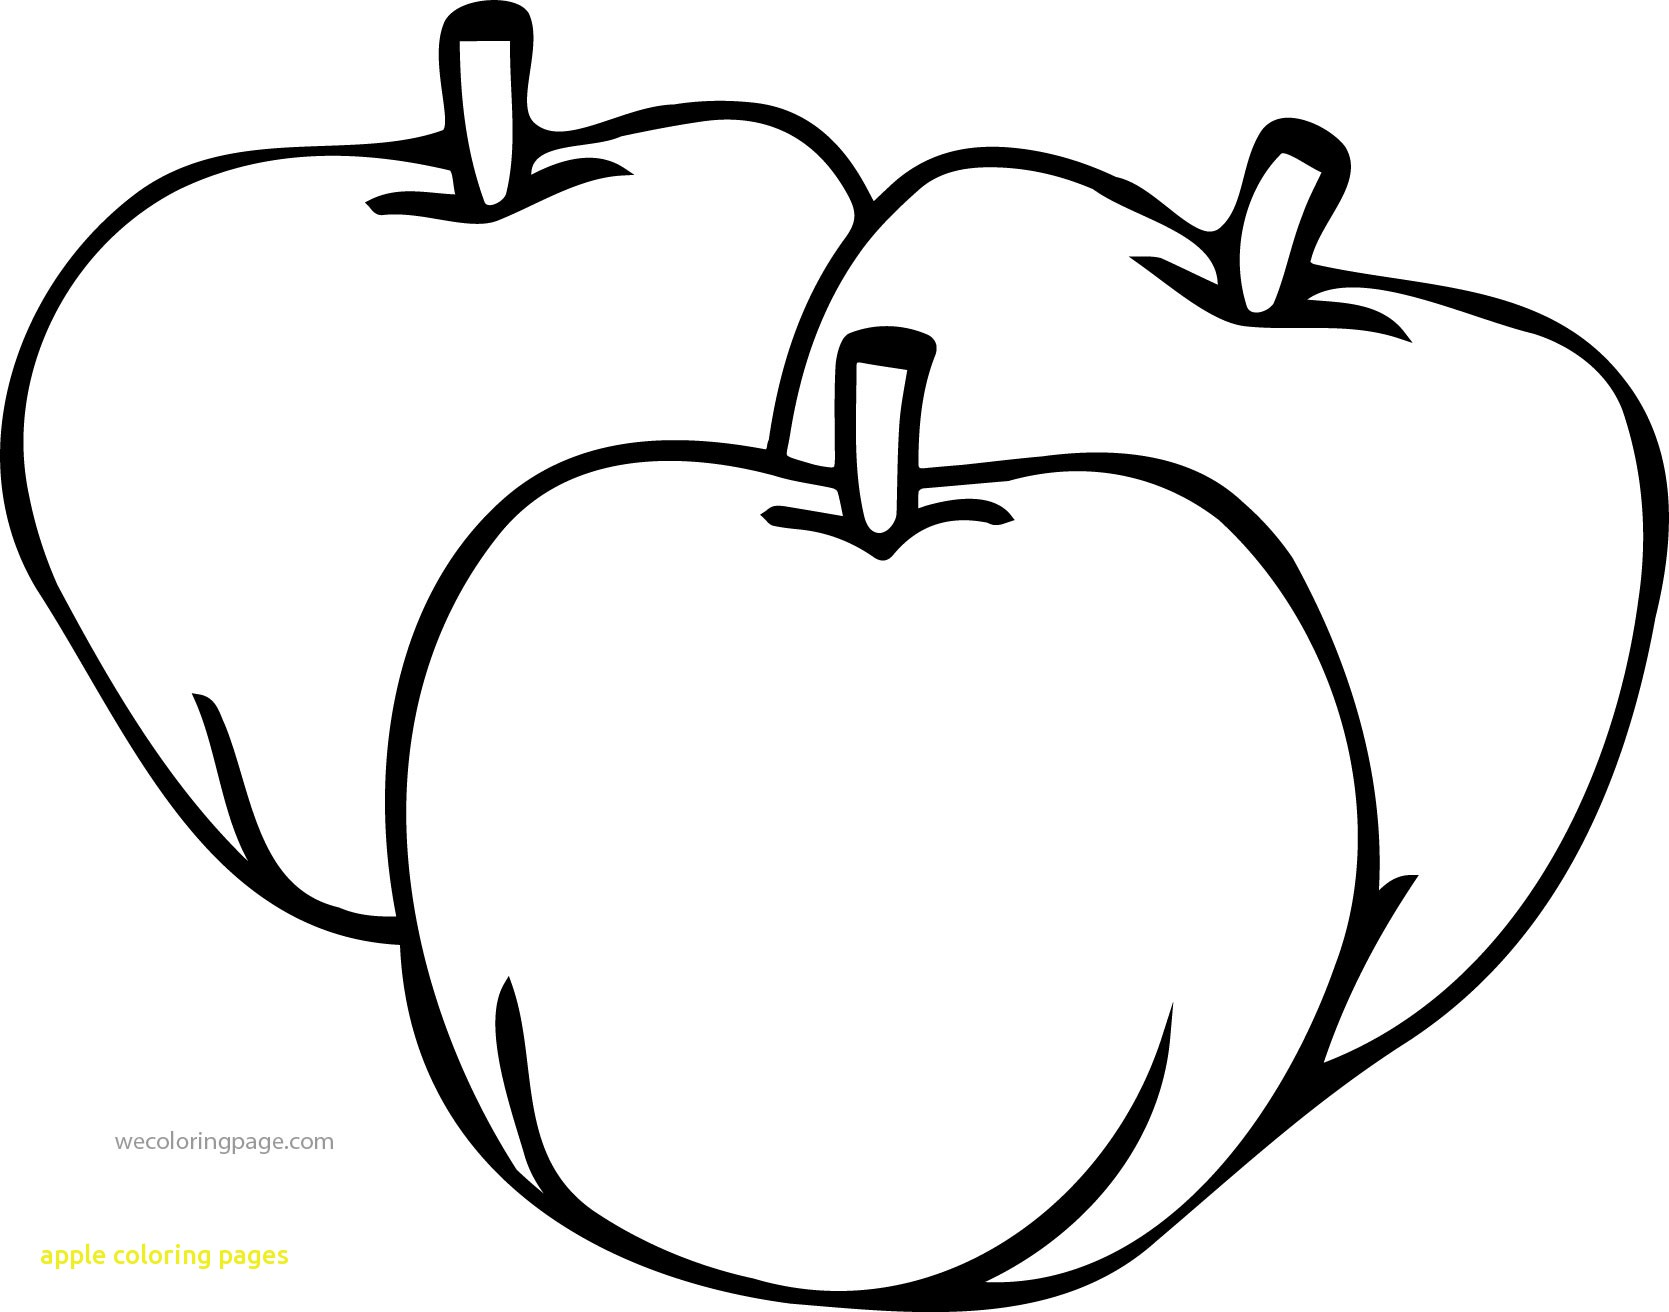 1669x1312 Apple Coloring Pages With Apple Coloring Pages Green Apple